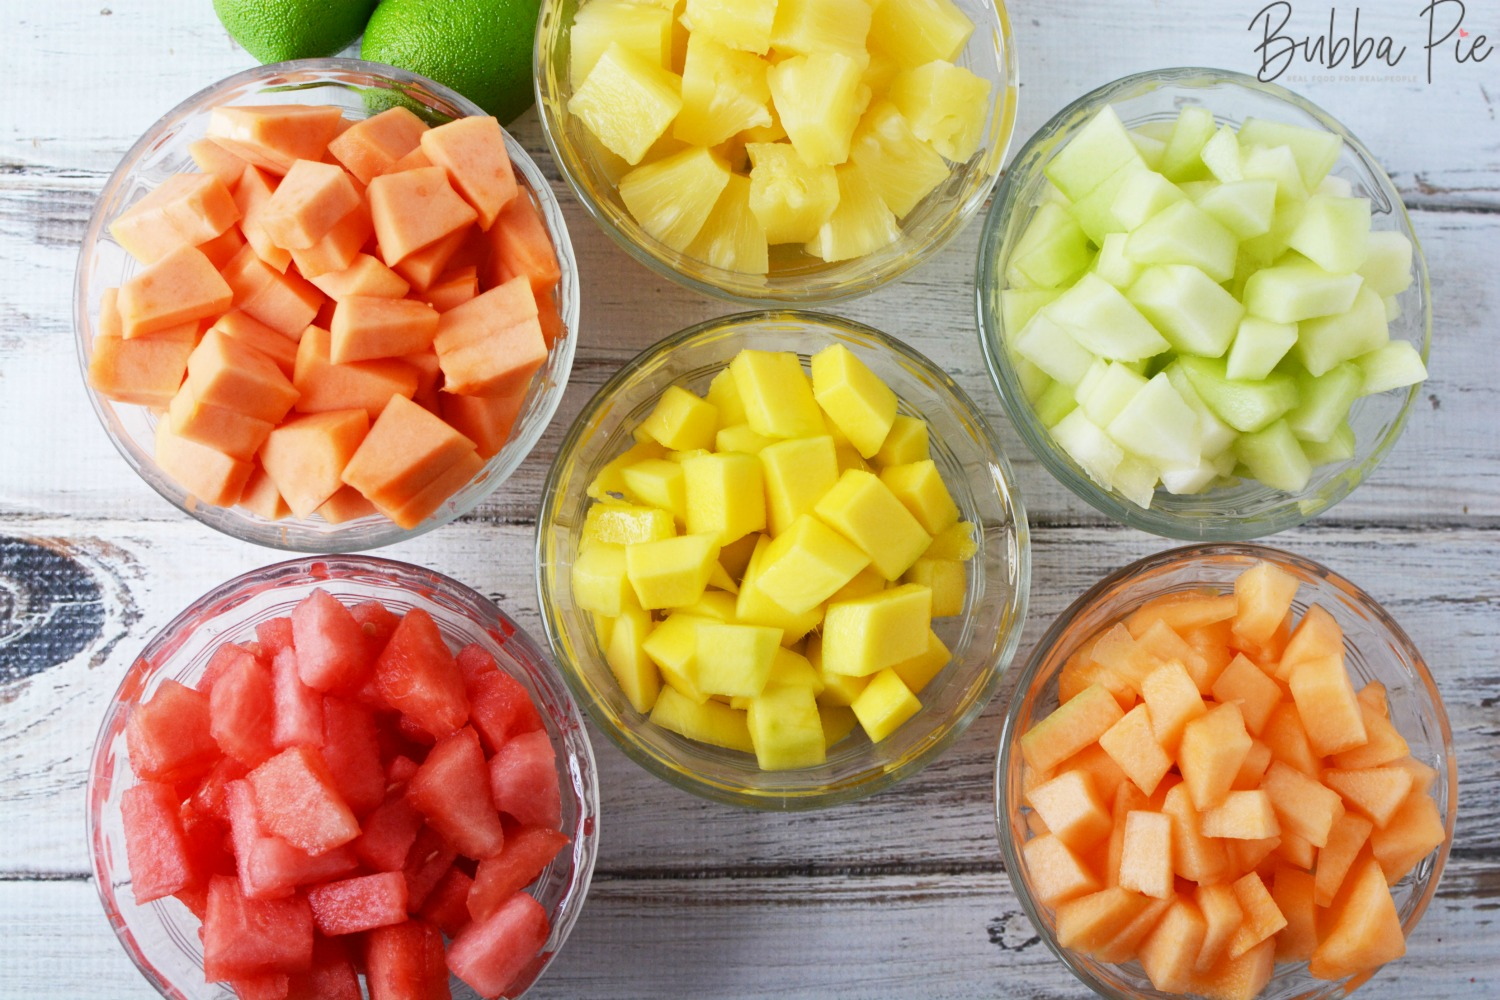 Mexican Fruit Salad Recipe has mangoes, pineapple, papaya and watermelon